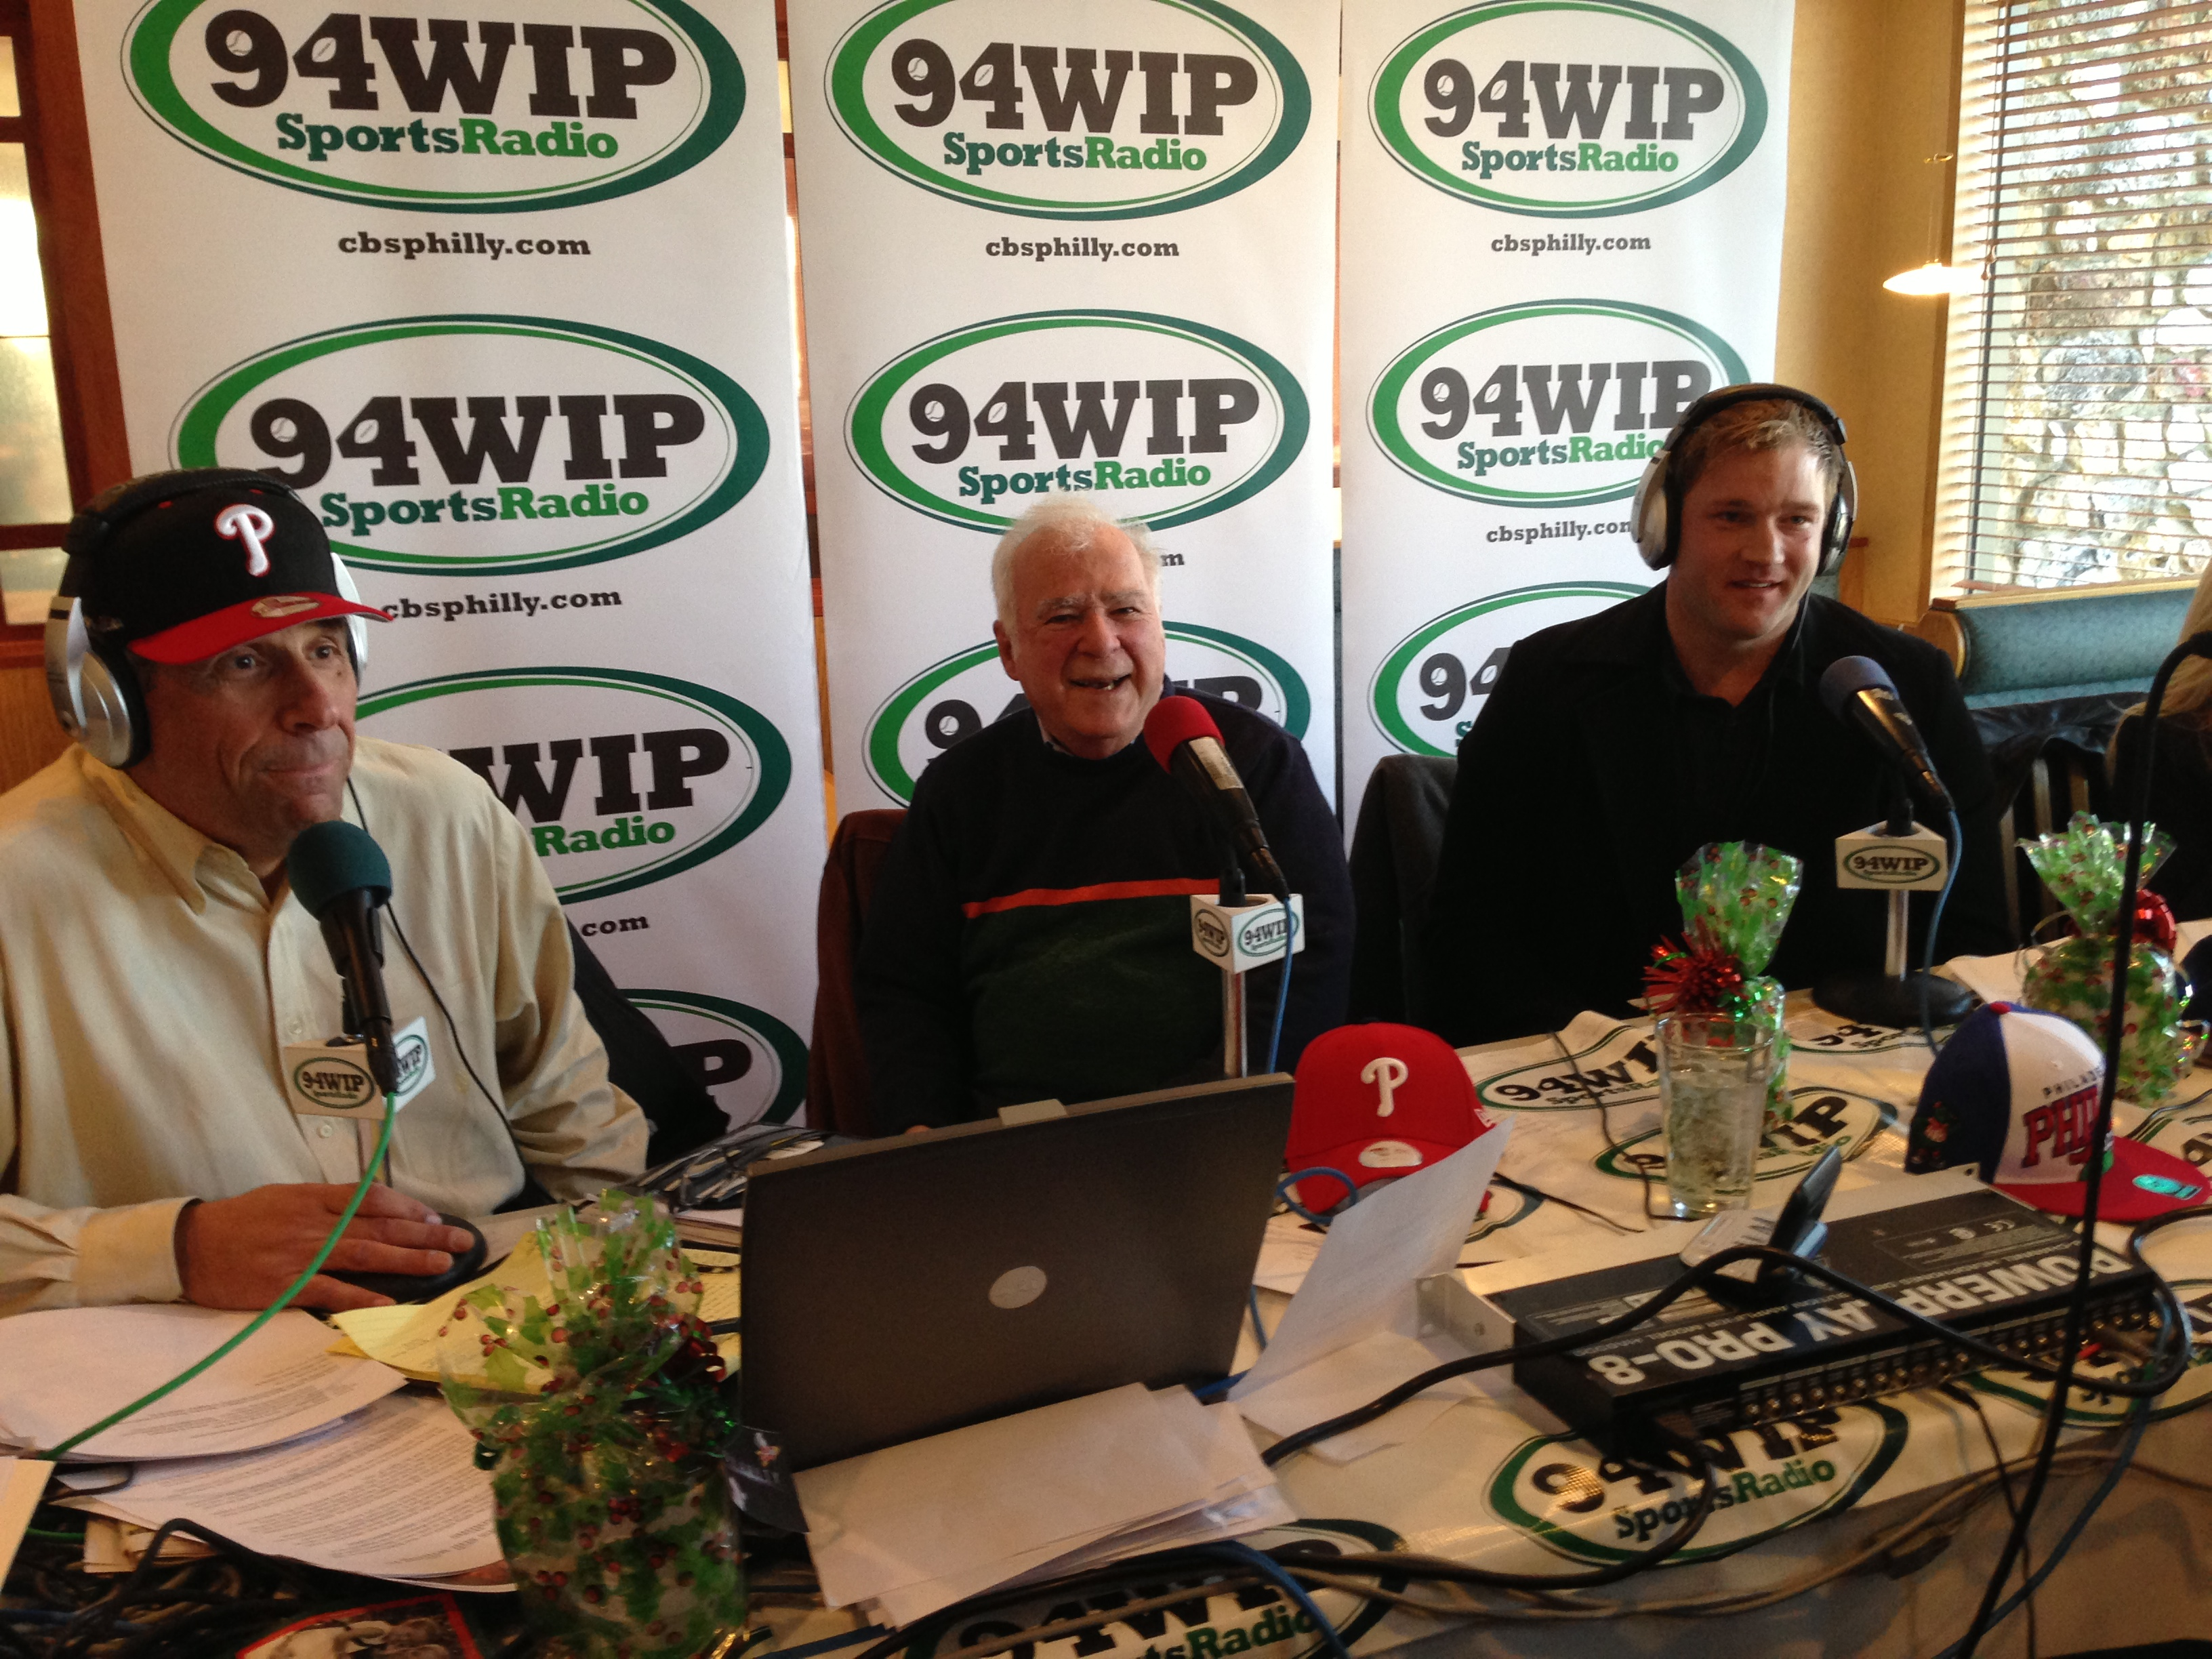 Stan Hochman (center) with Angelo Cataldi (left) and Todd Fedoruk (right)  at the WIP Morning Show Christmas Party in 2013.